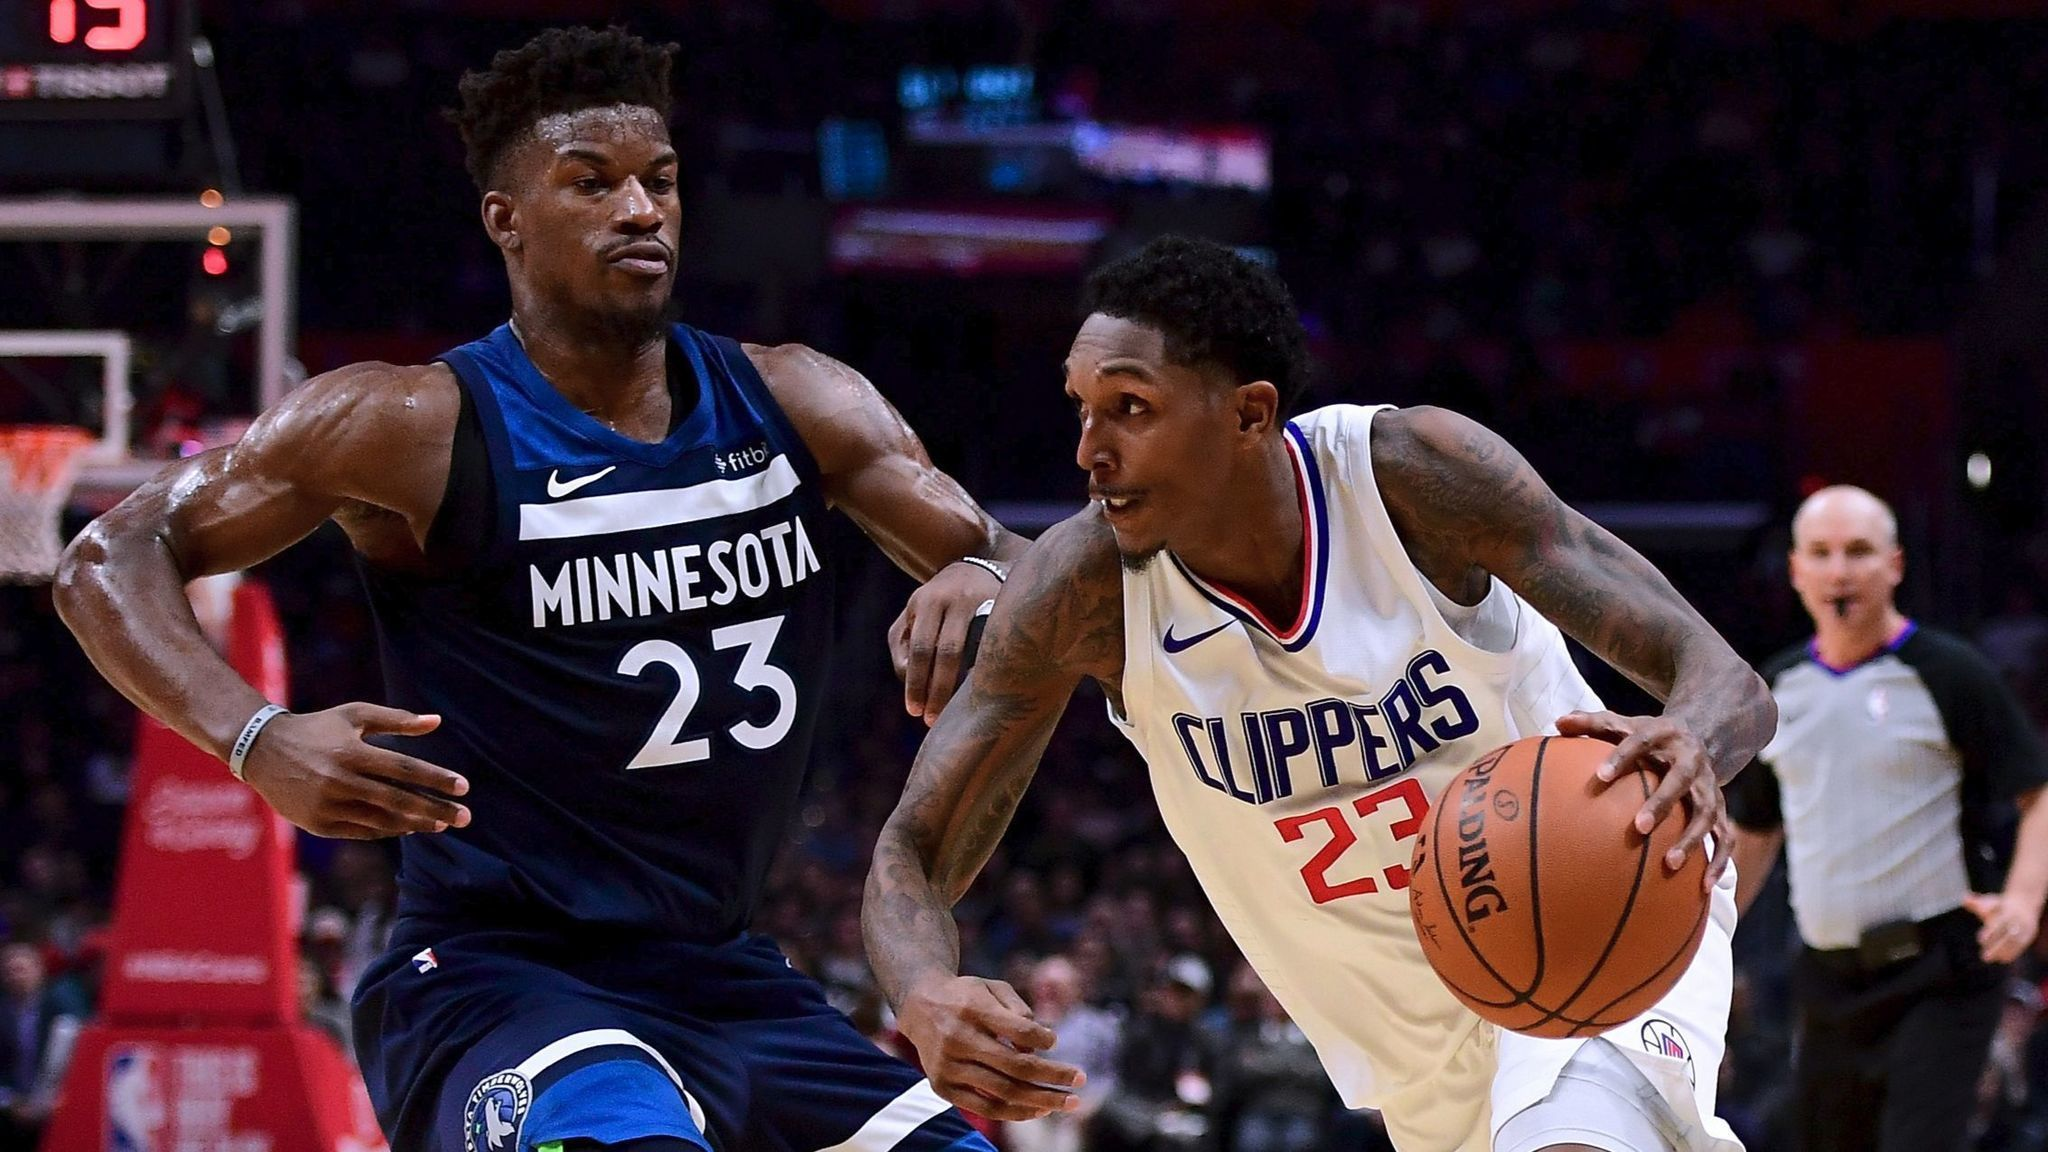 La-sp-clippers-takeaways-20171207